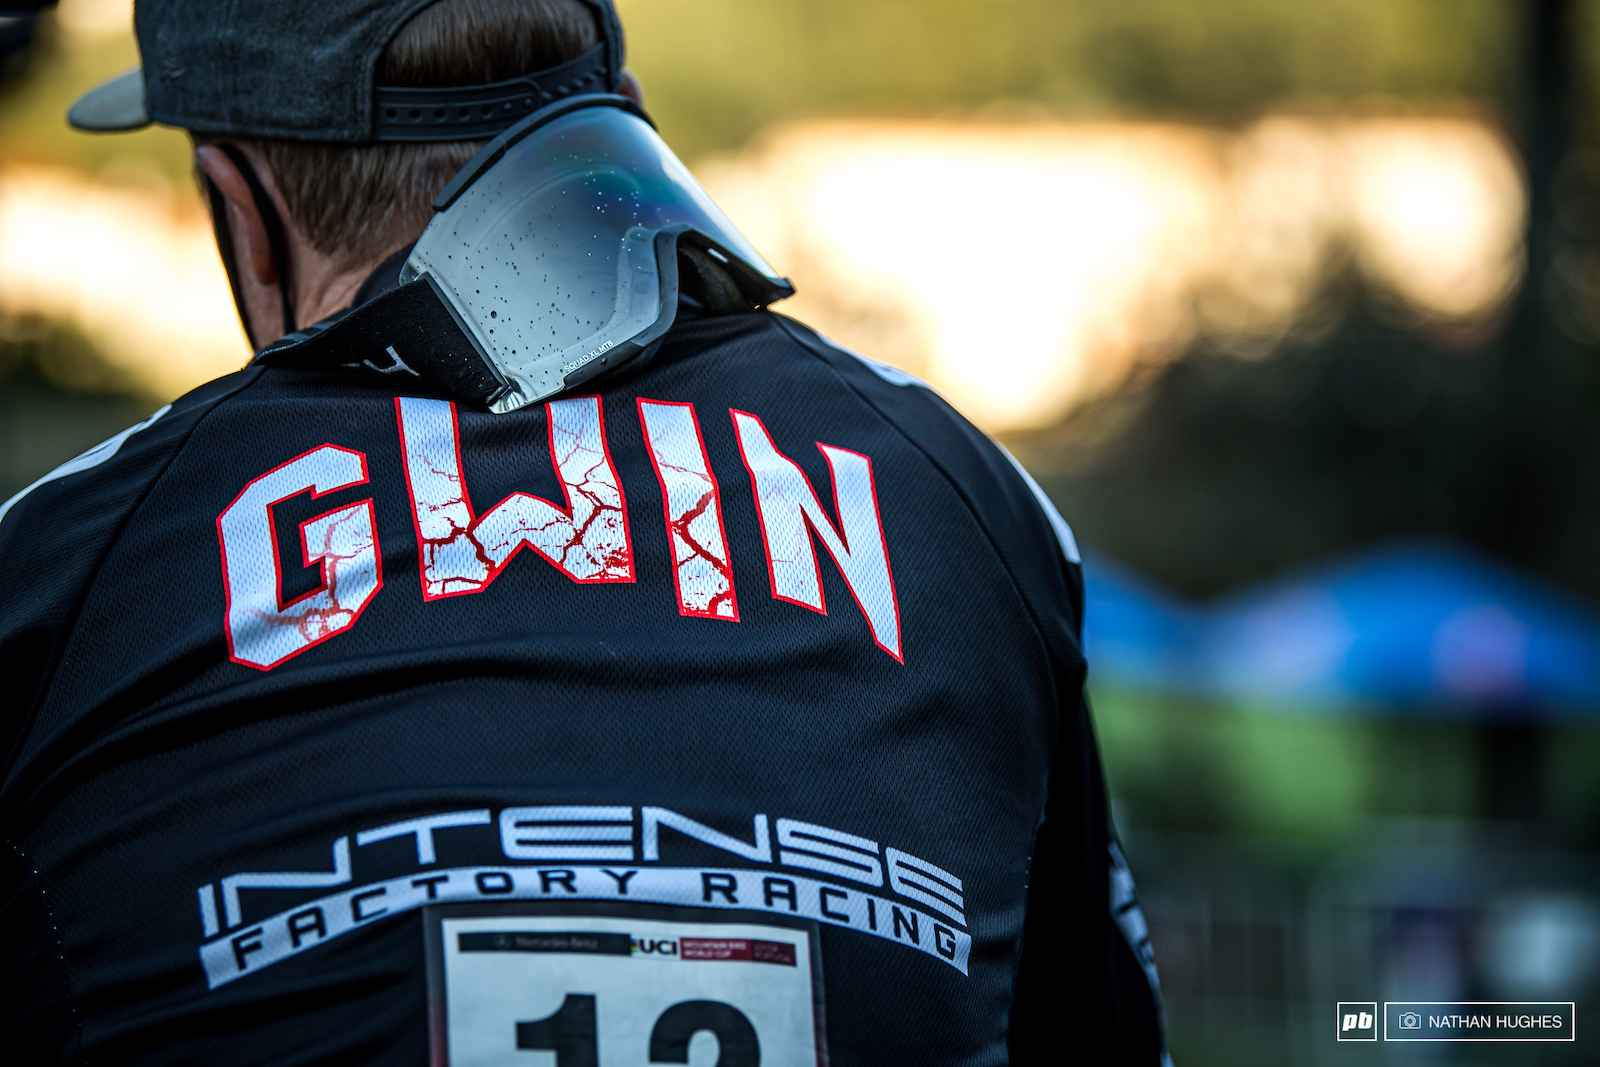 A little sebatical from podium duties for Aaron Gwin and he s back to work. Can he climb further up the ranks on track 2